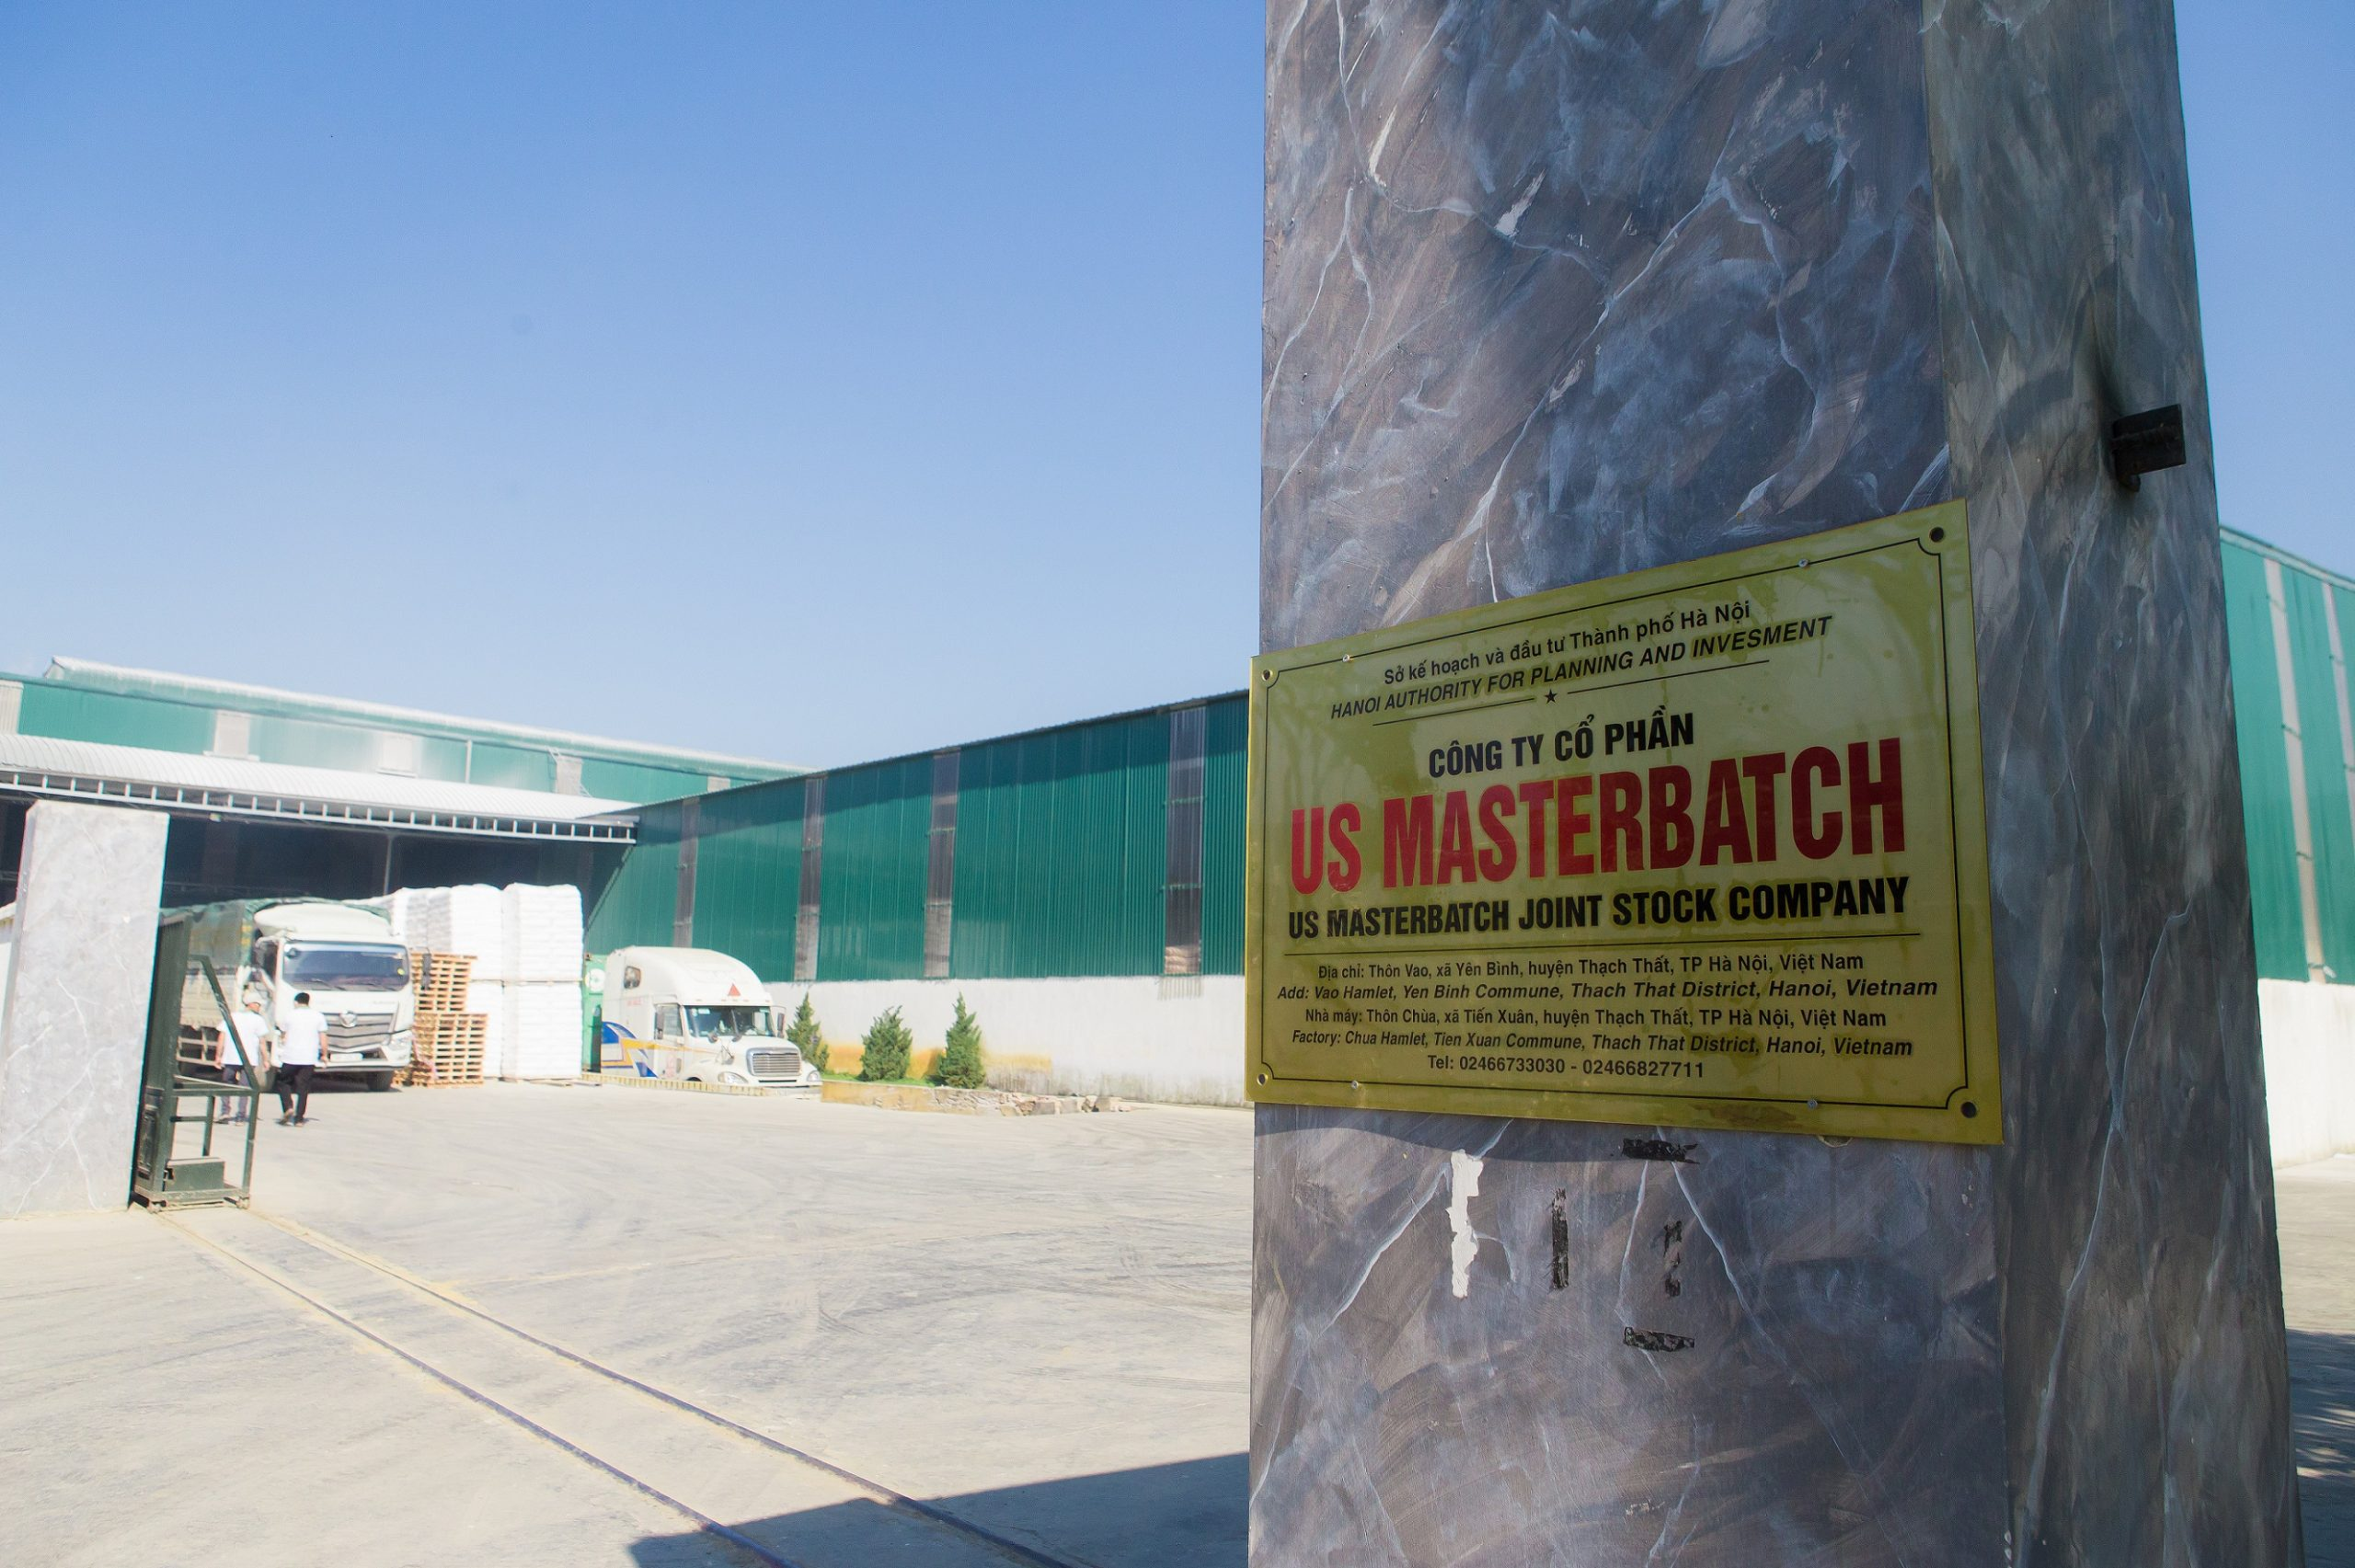 How US MASTERBATCH can become the fastest growing brand in plastic masterbatch in Vietnam?